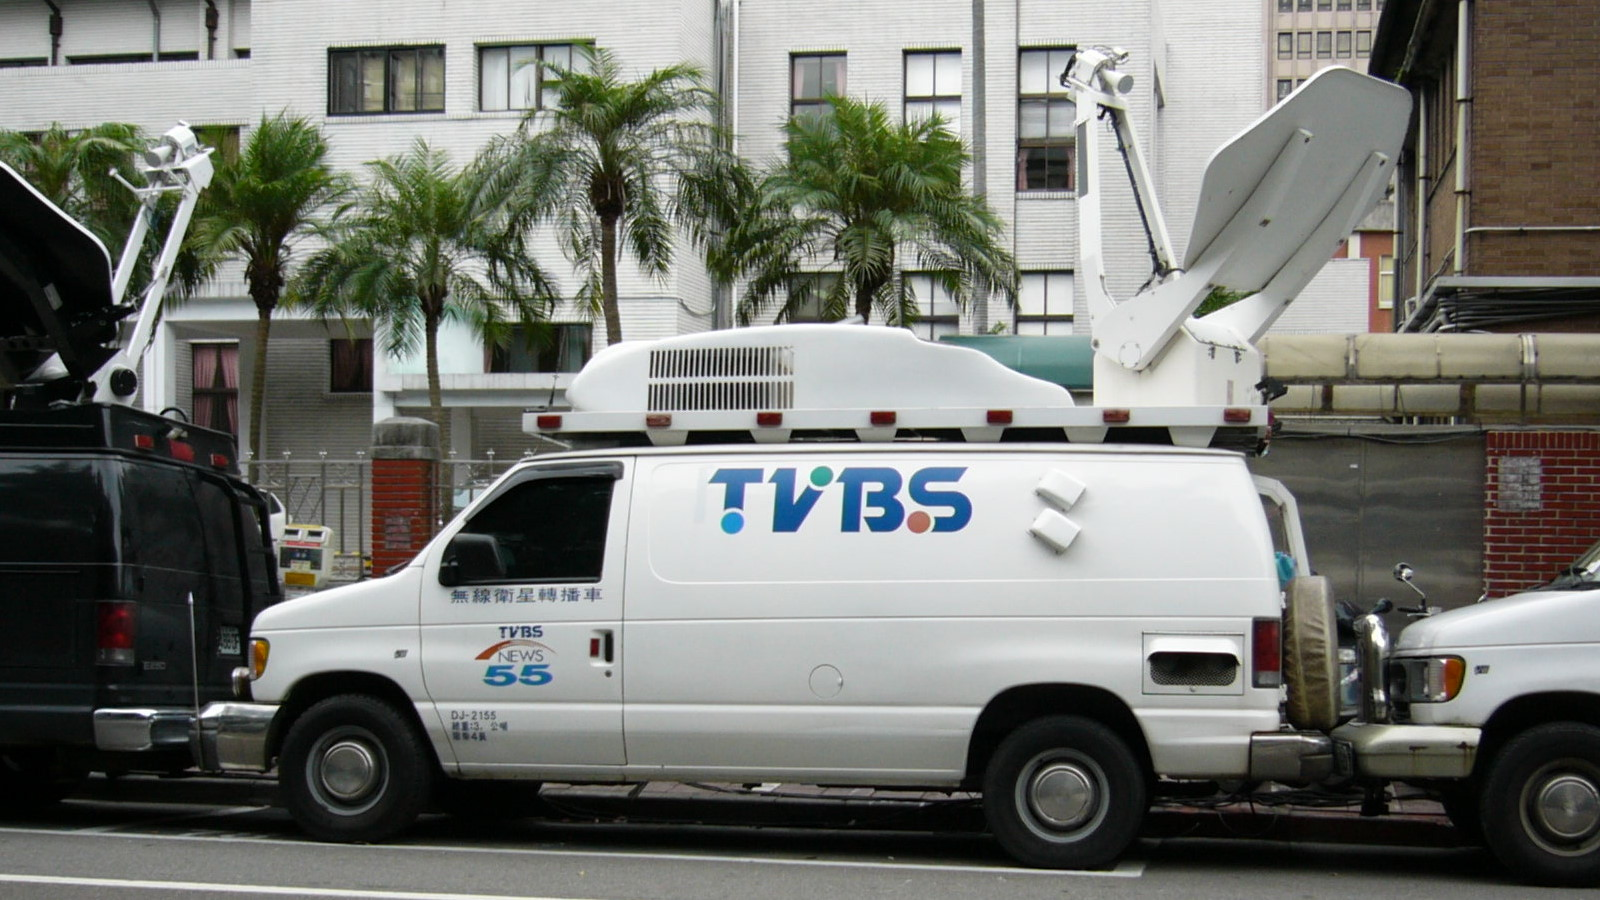 File:TVBS NEWS SNG van DJ-2155 left.jpg - Wikimedia Commons